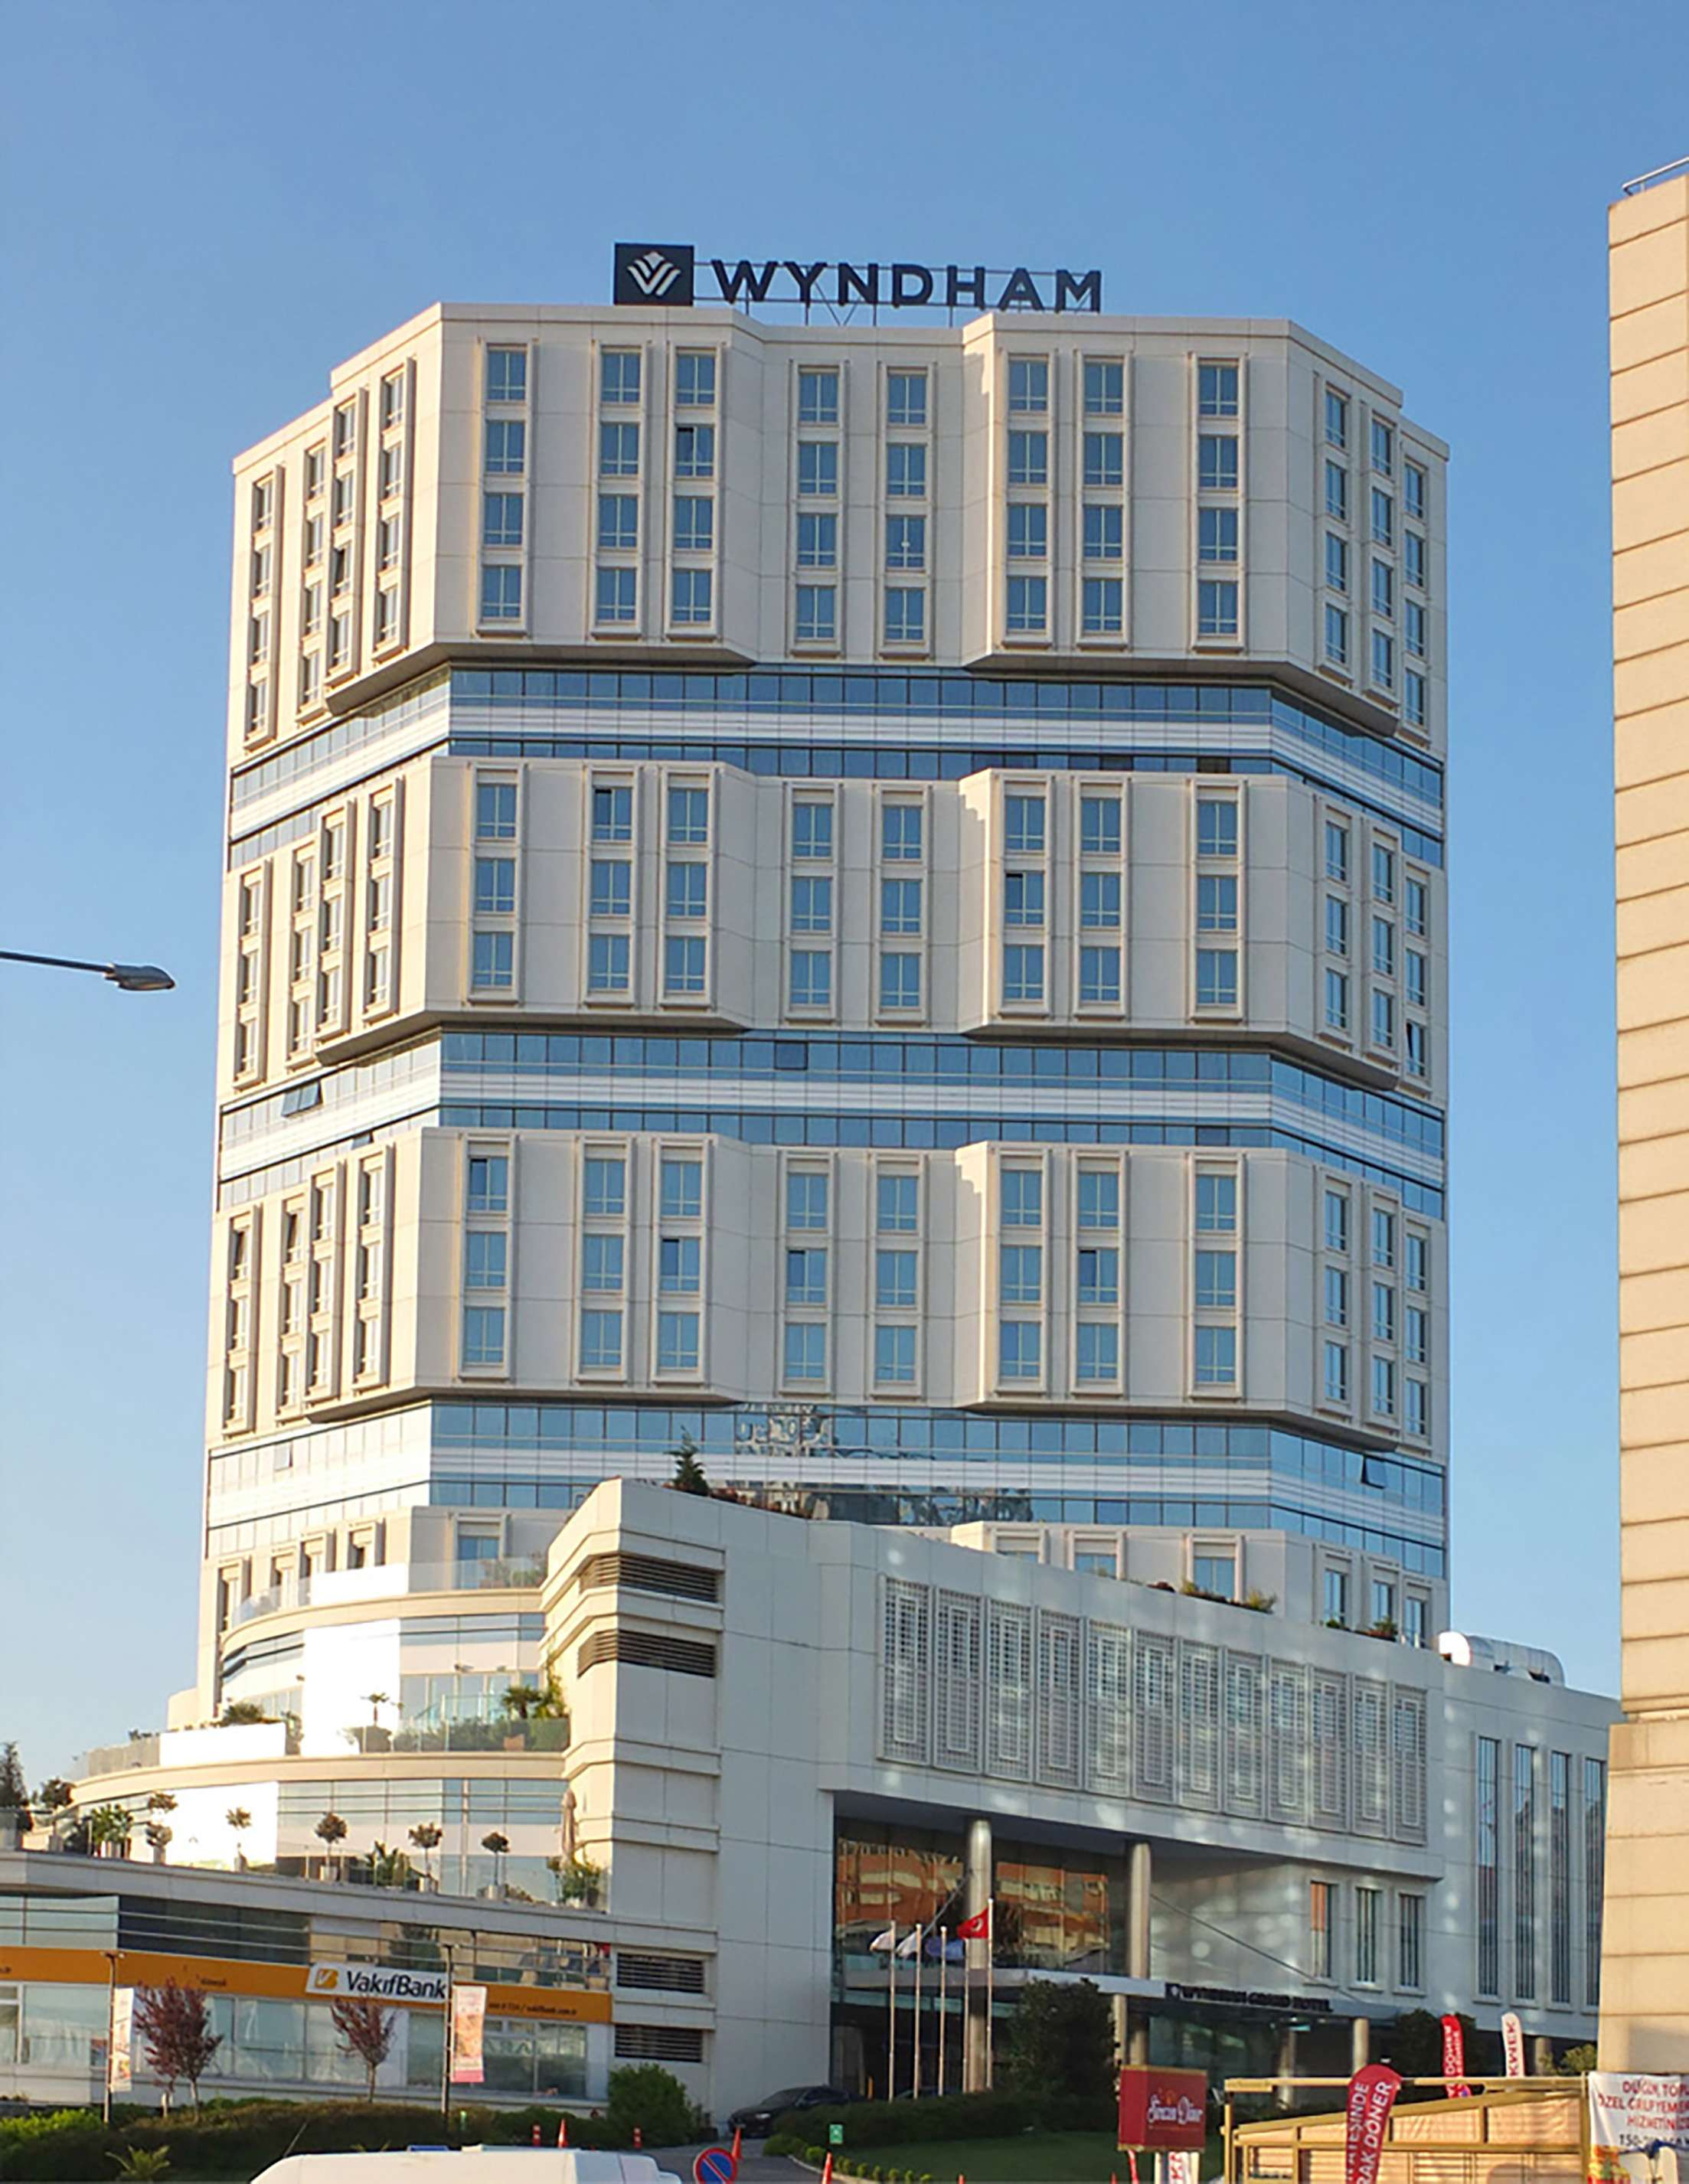 Fibrobeton Wyndham Hotel & Shopping Mall